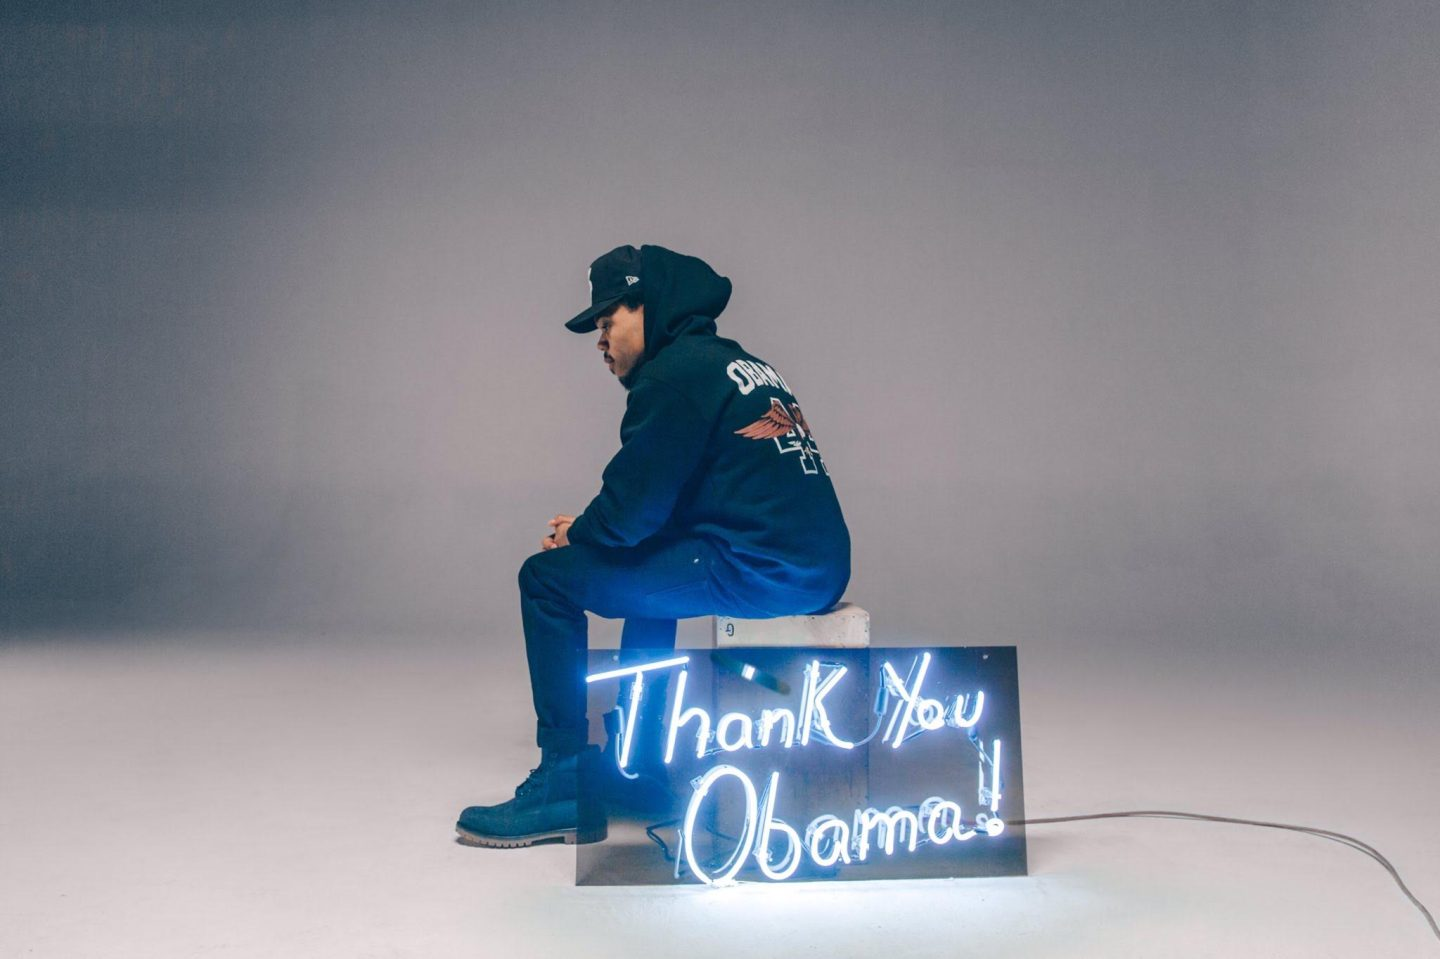 Chance the Rapper Honors the Obamas with Fashion Line